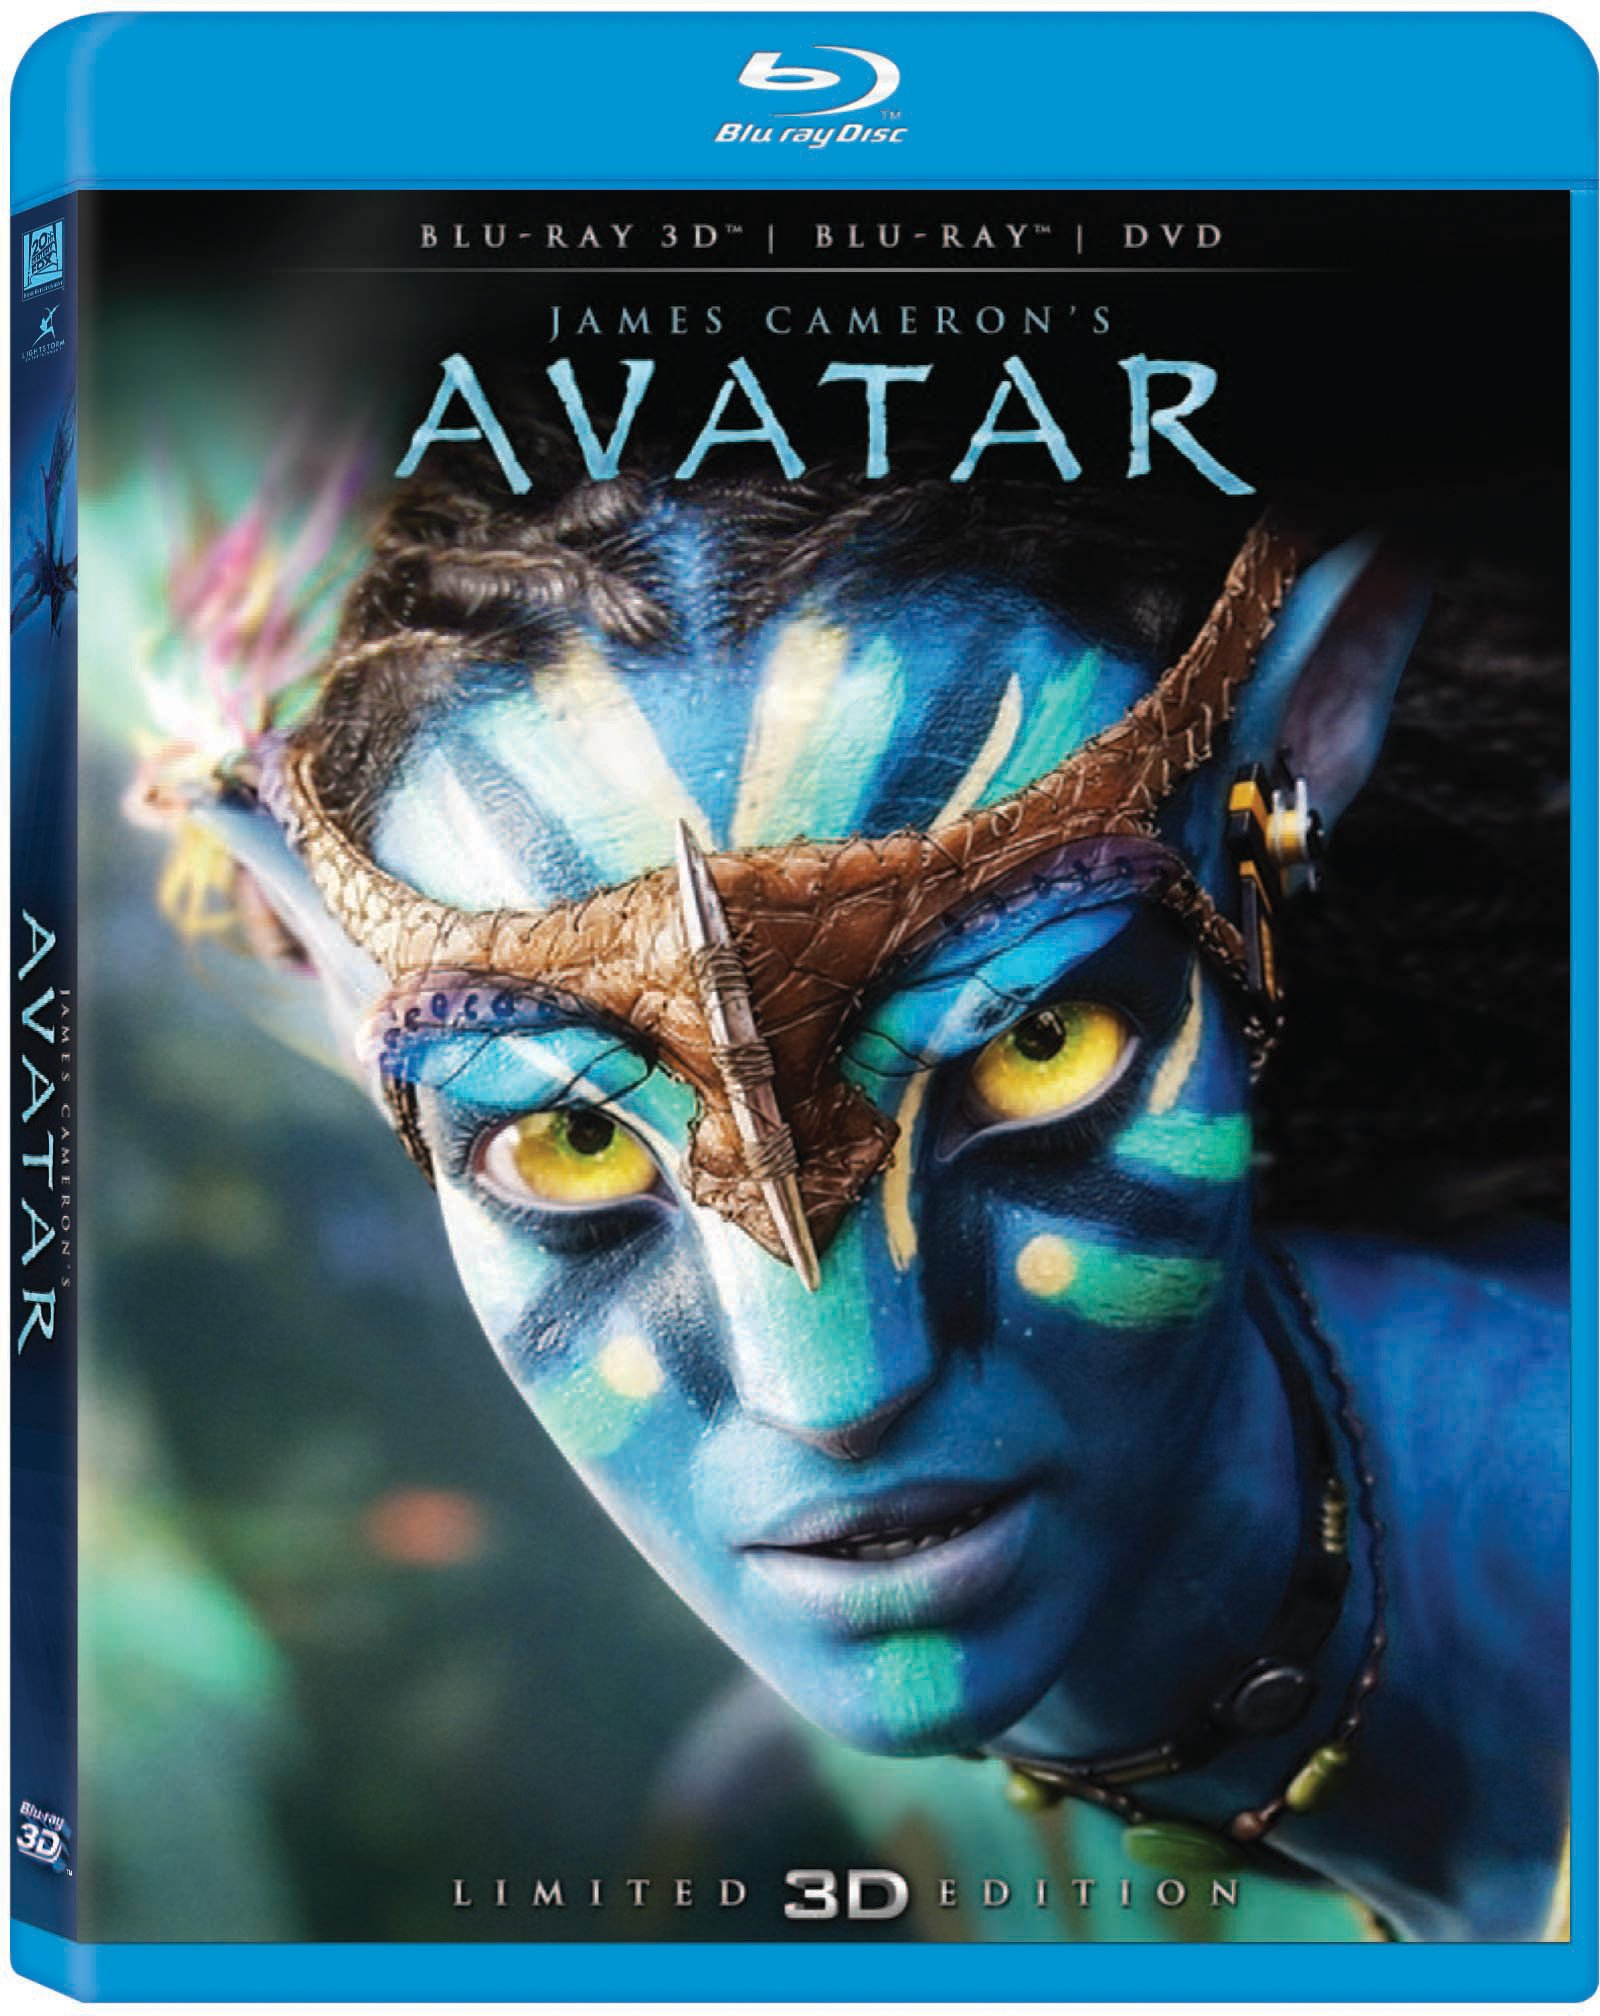 Blu-ray 3D : Avatar (With DVD, Limited Edition, Repackaged, Digital Theater System, AC-3)